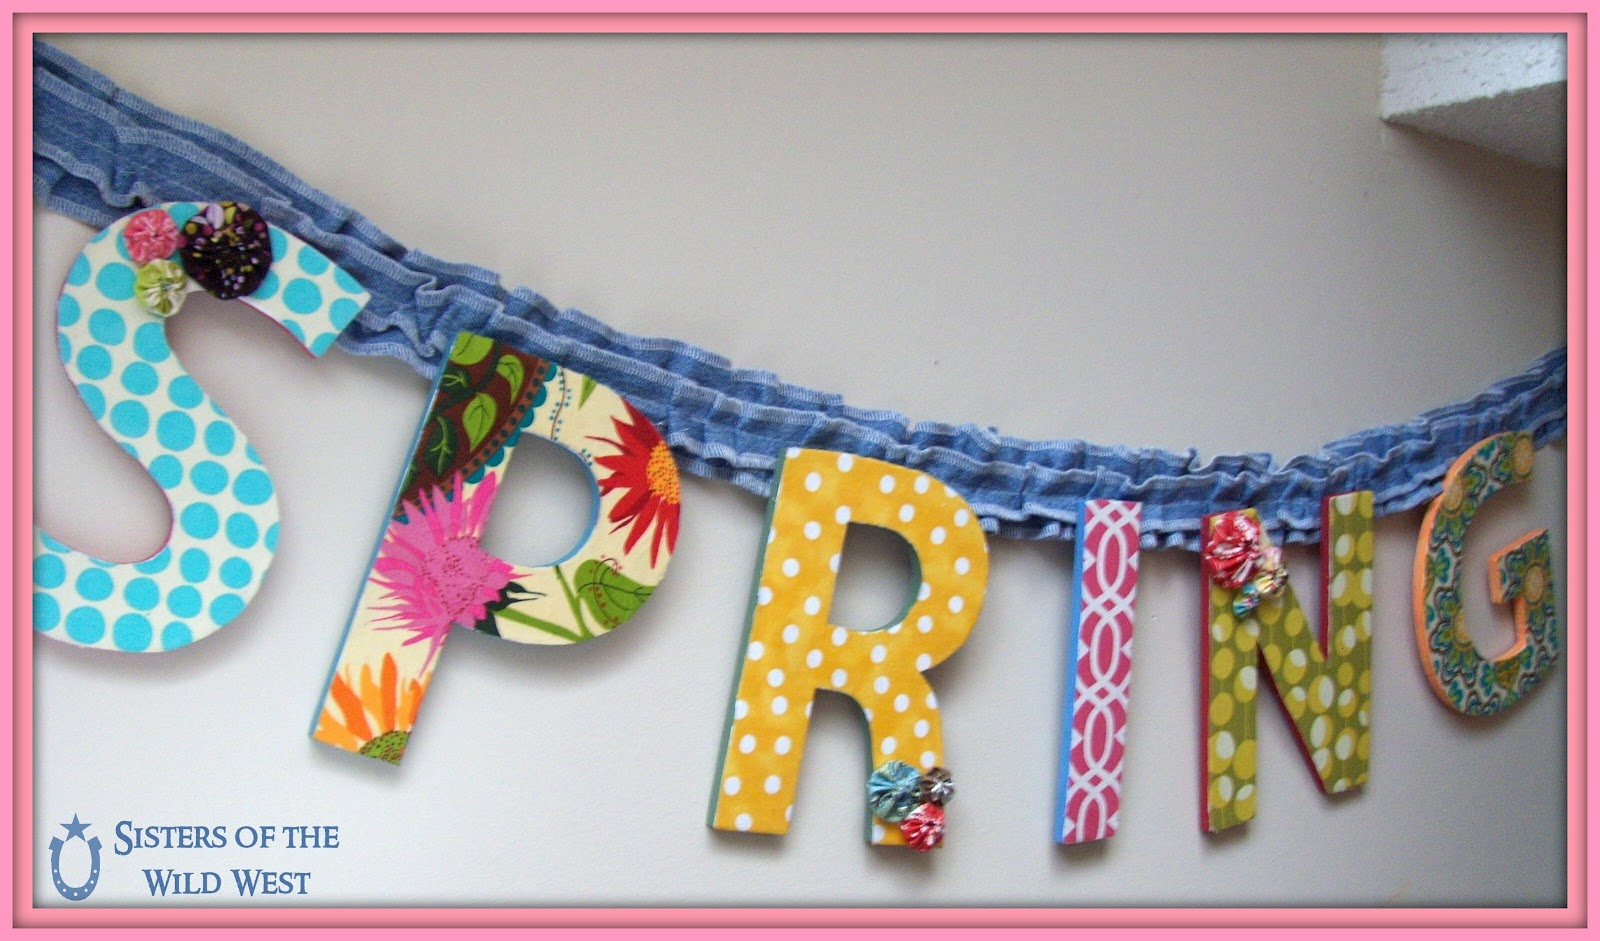 sisters of the wild west spring home decor chipboard letter tutorial